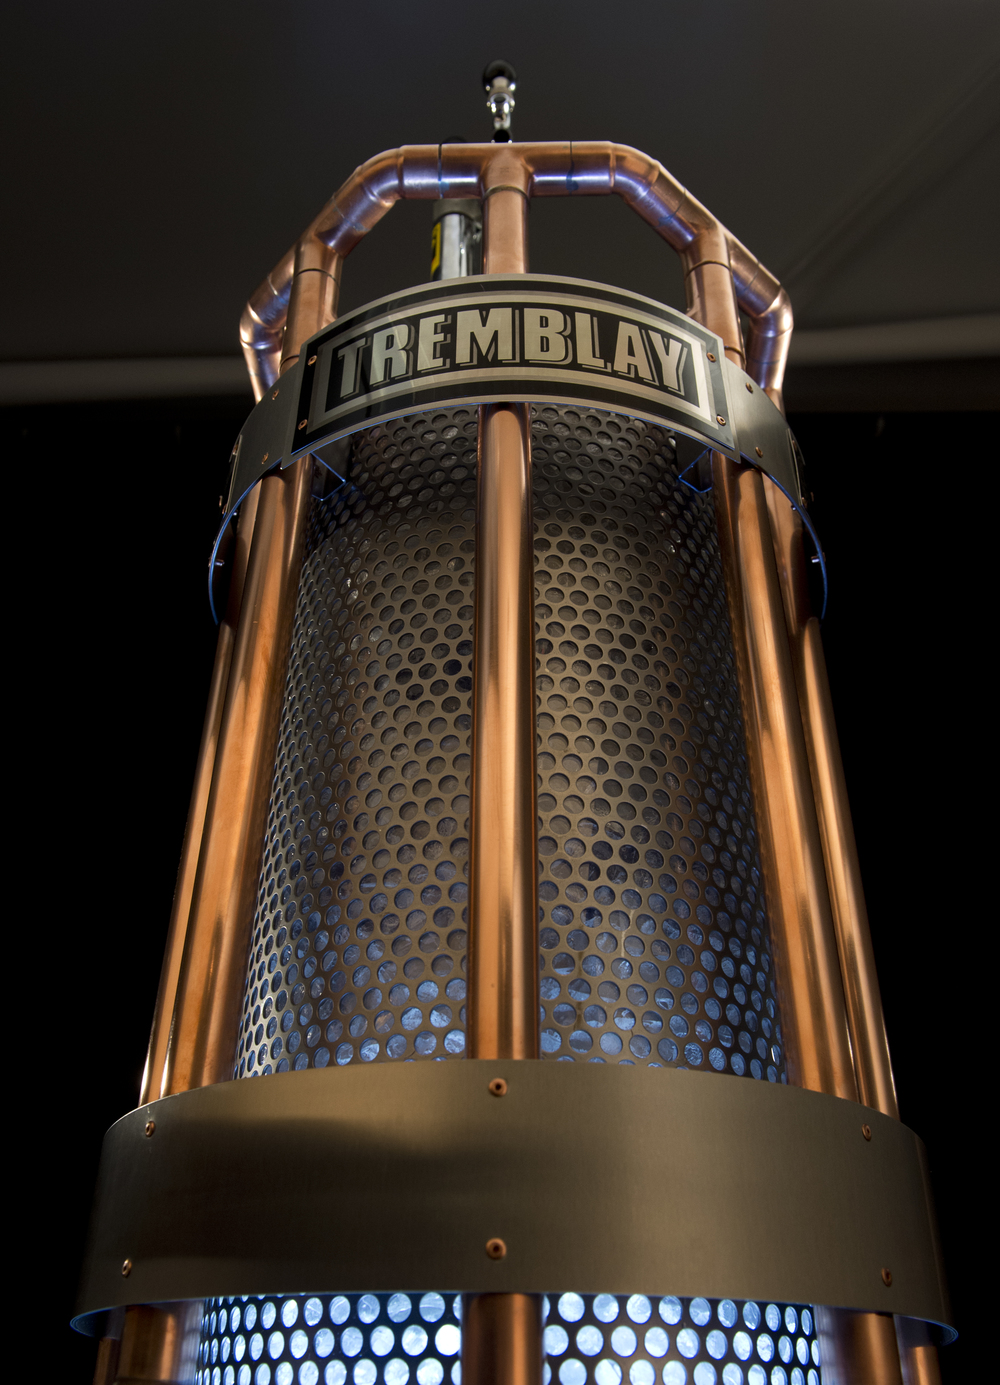 The tremblay trophy, an exclusive design by totem urbain for the lfa and rjbreweries.